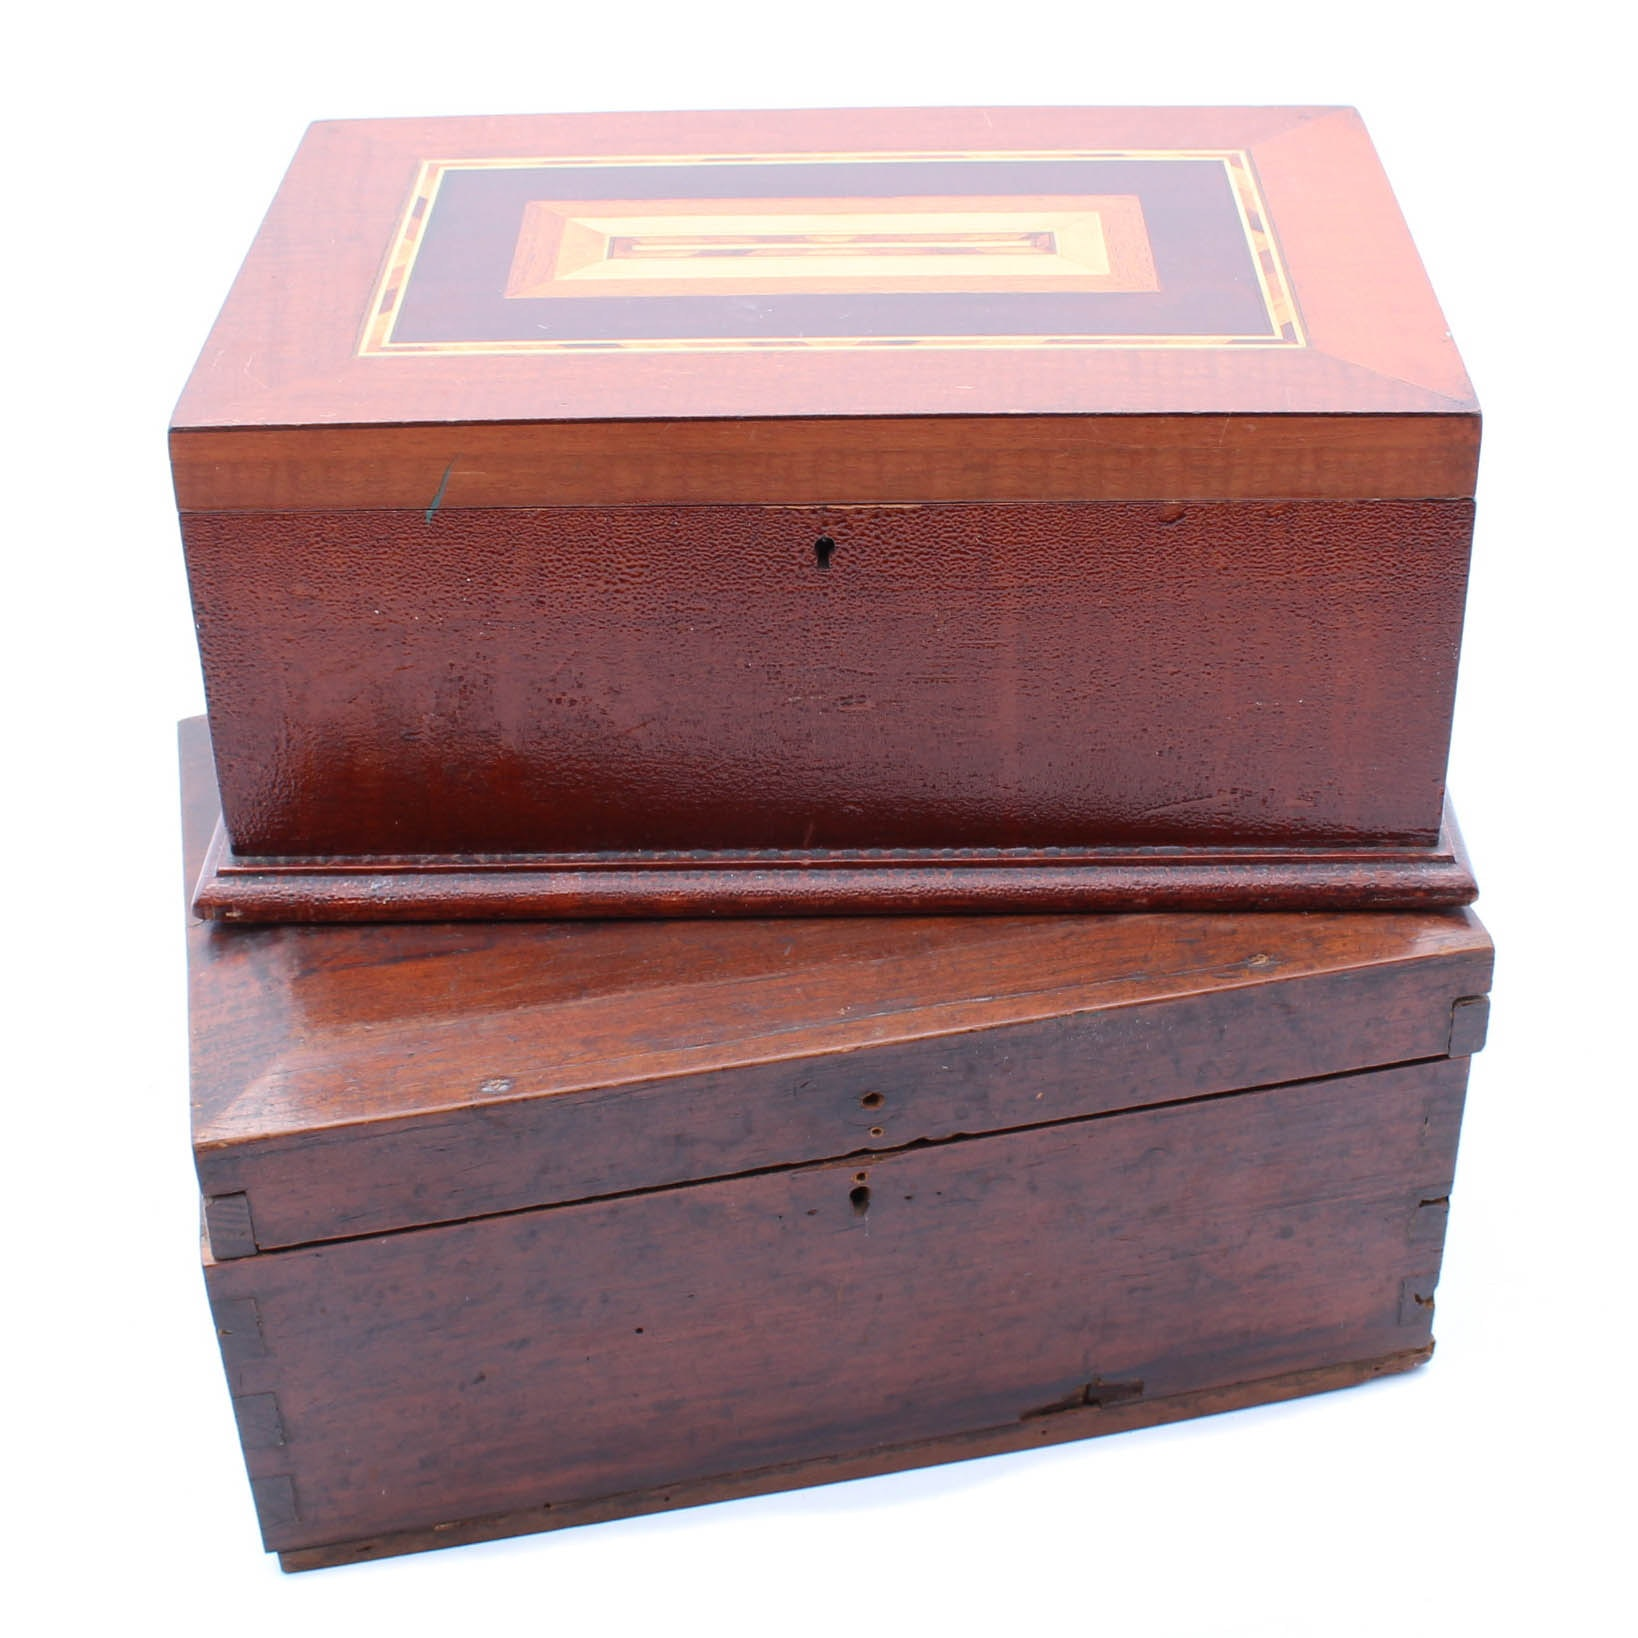 Antique and Vintage Wooden Boxes including Marquetry Inlay